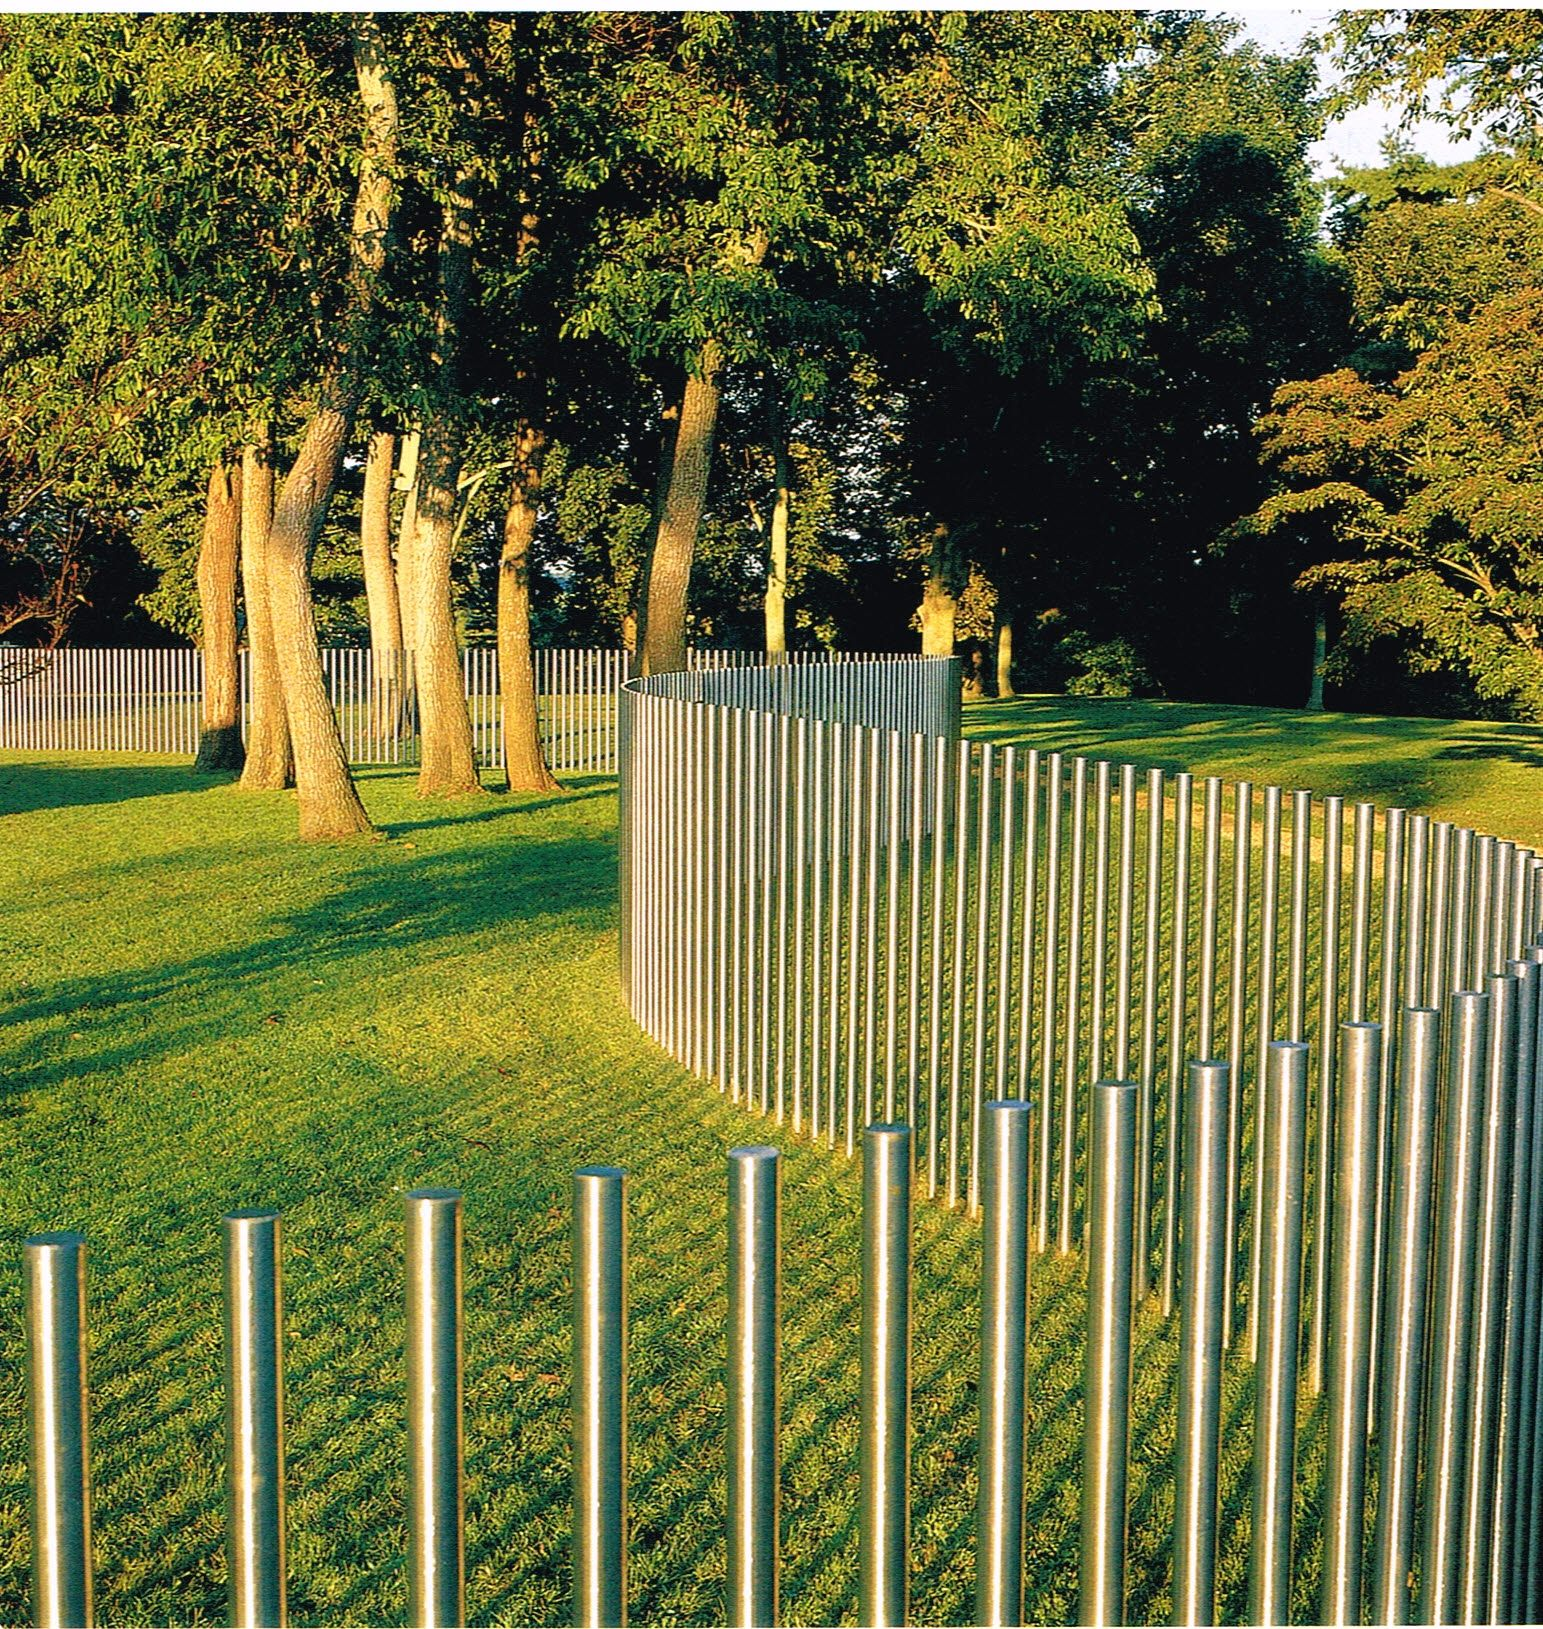 Stainless Steel Post Fence D Reed Modern Farmhouse Exterior Fence Landscape Walls